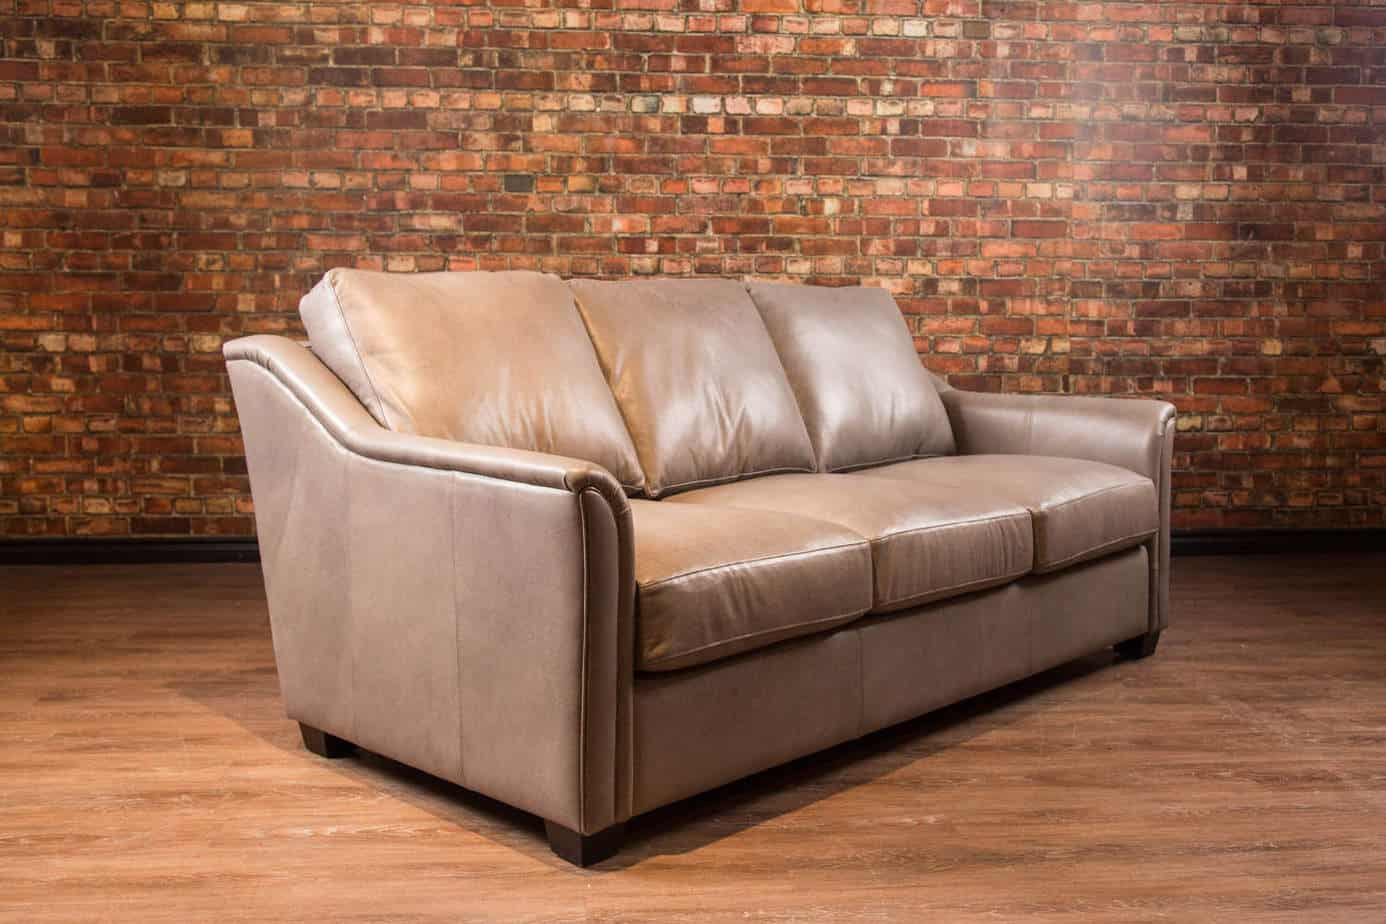 The San Antonio Leather Sofa | Canada\'s Boss Leather Sofas and Furniture